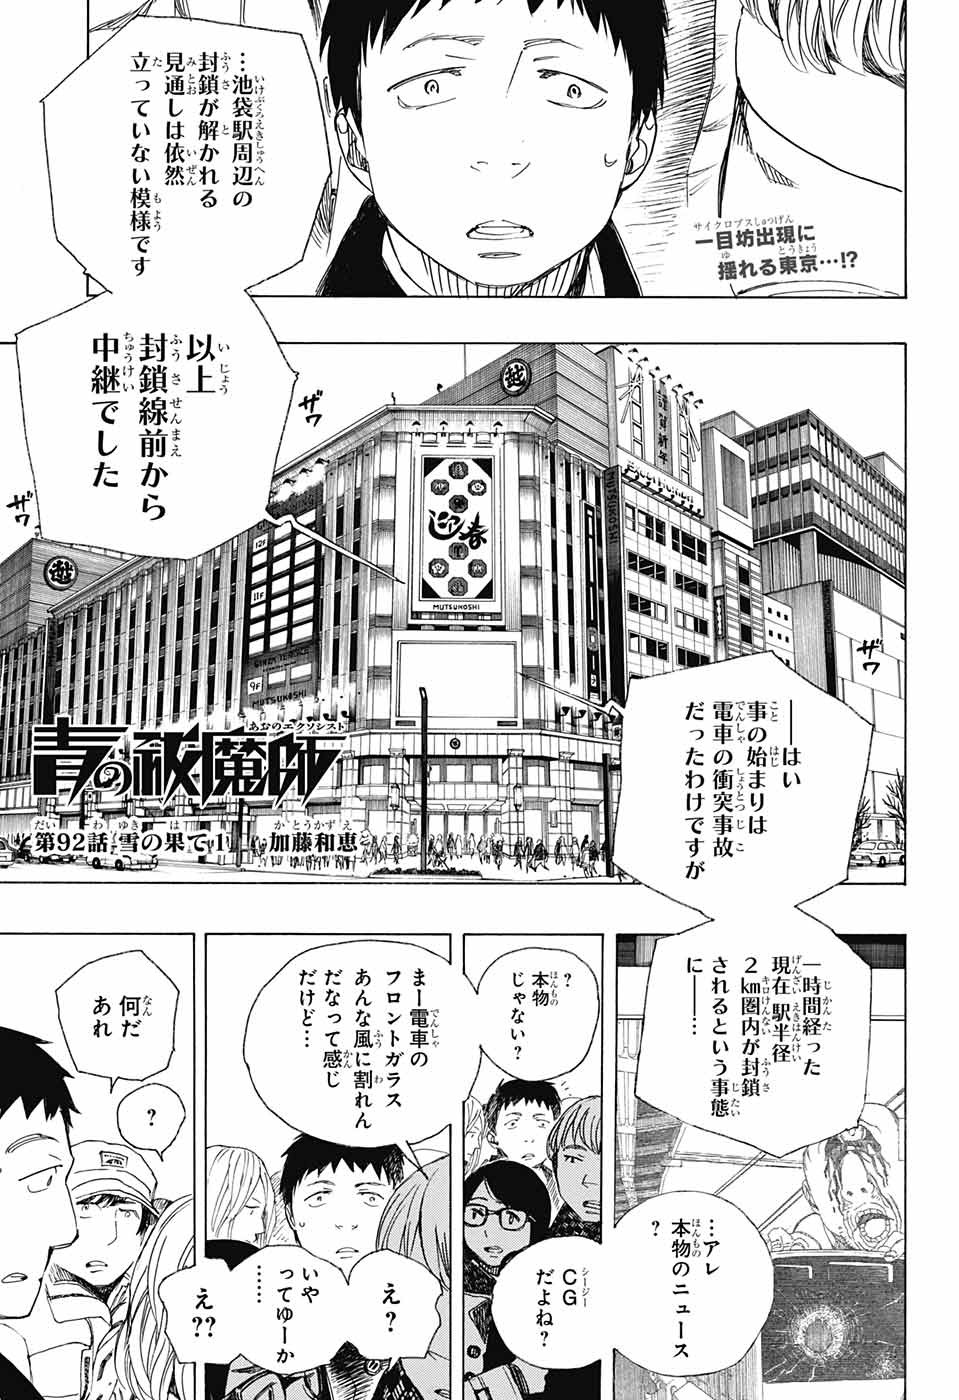 Ao_no_Exorcist Chapter 92 Page 1